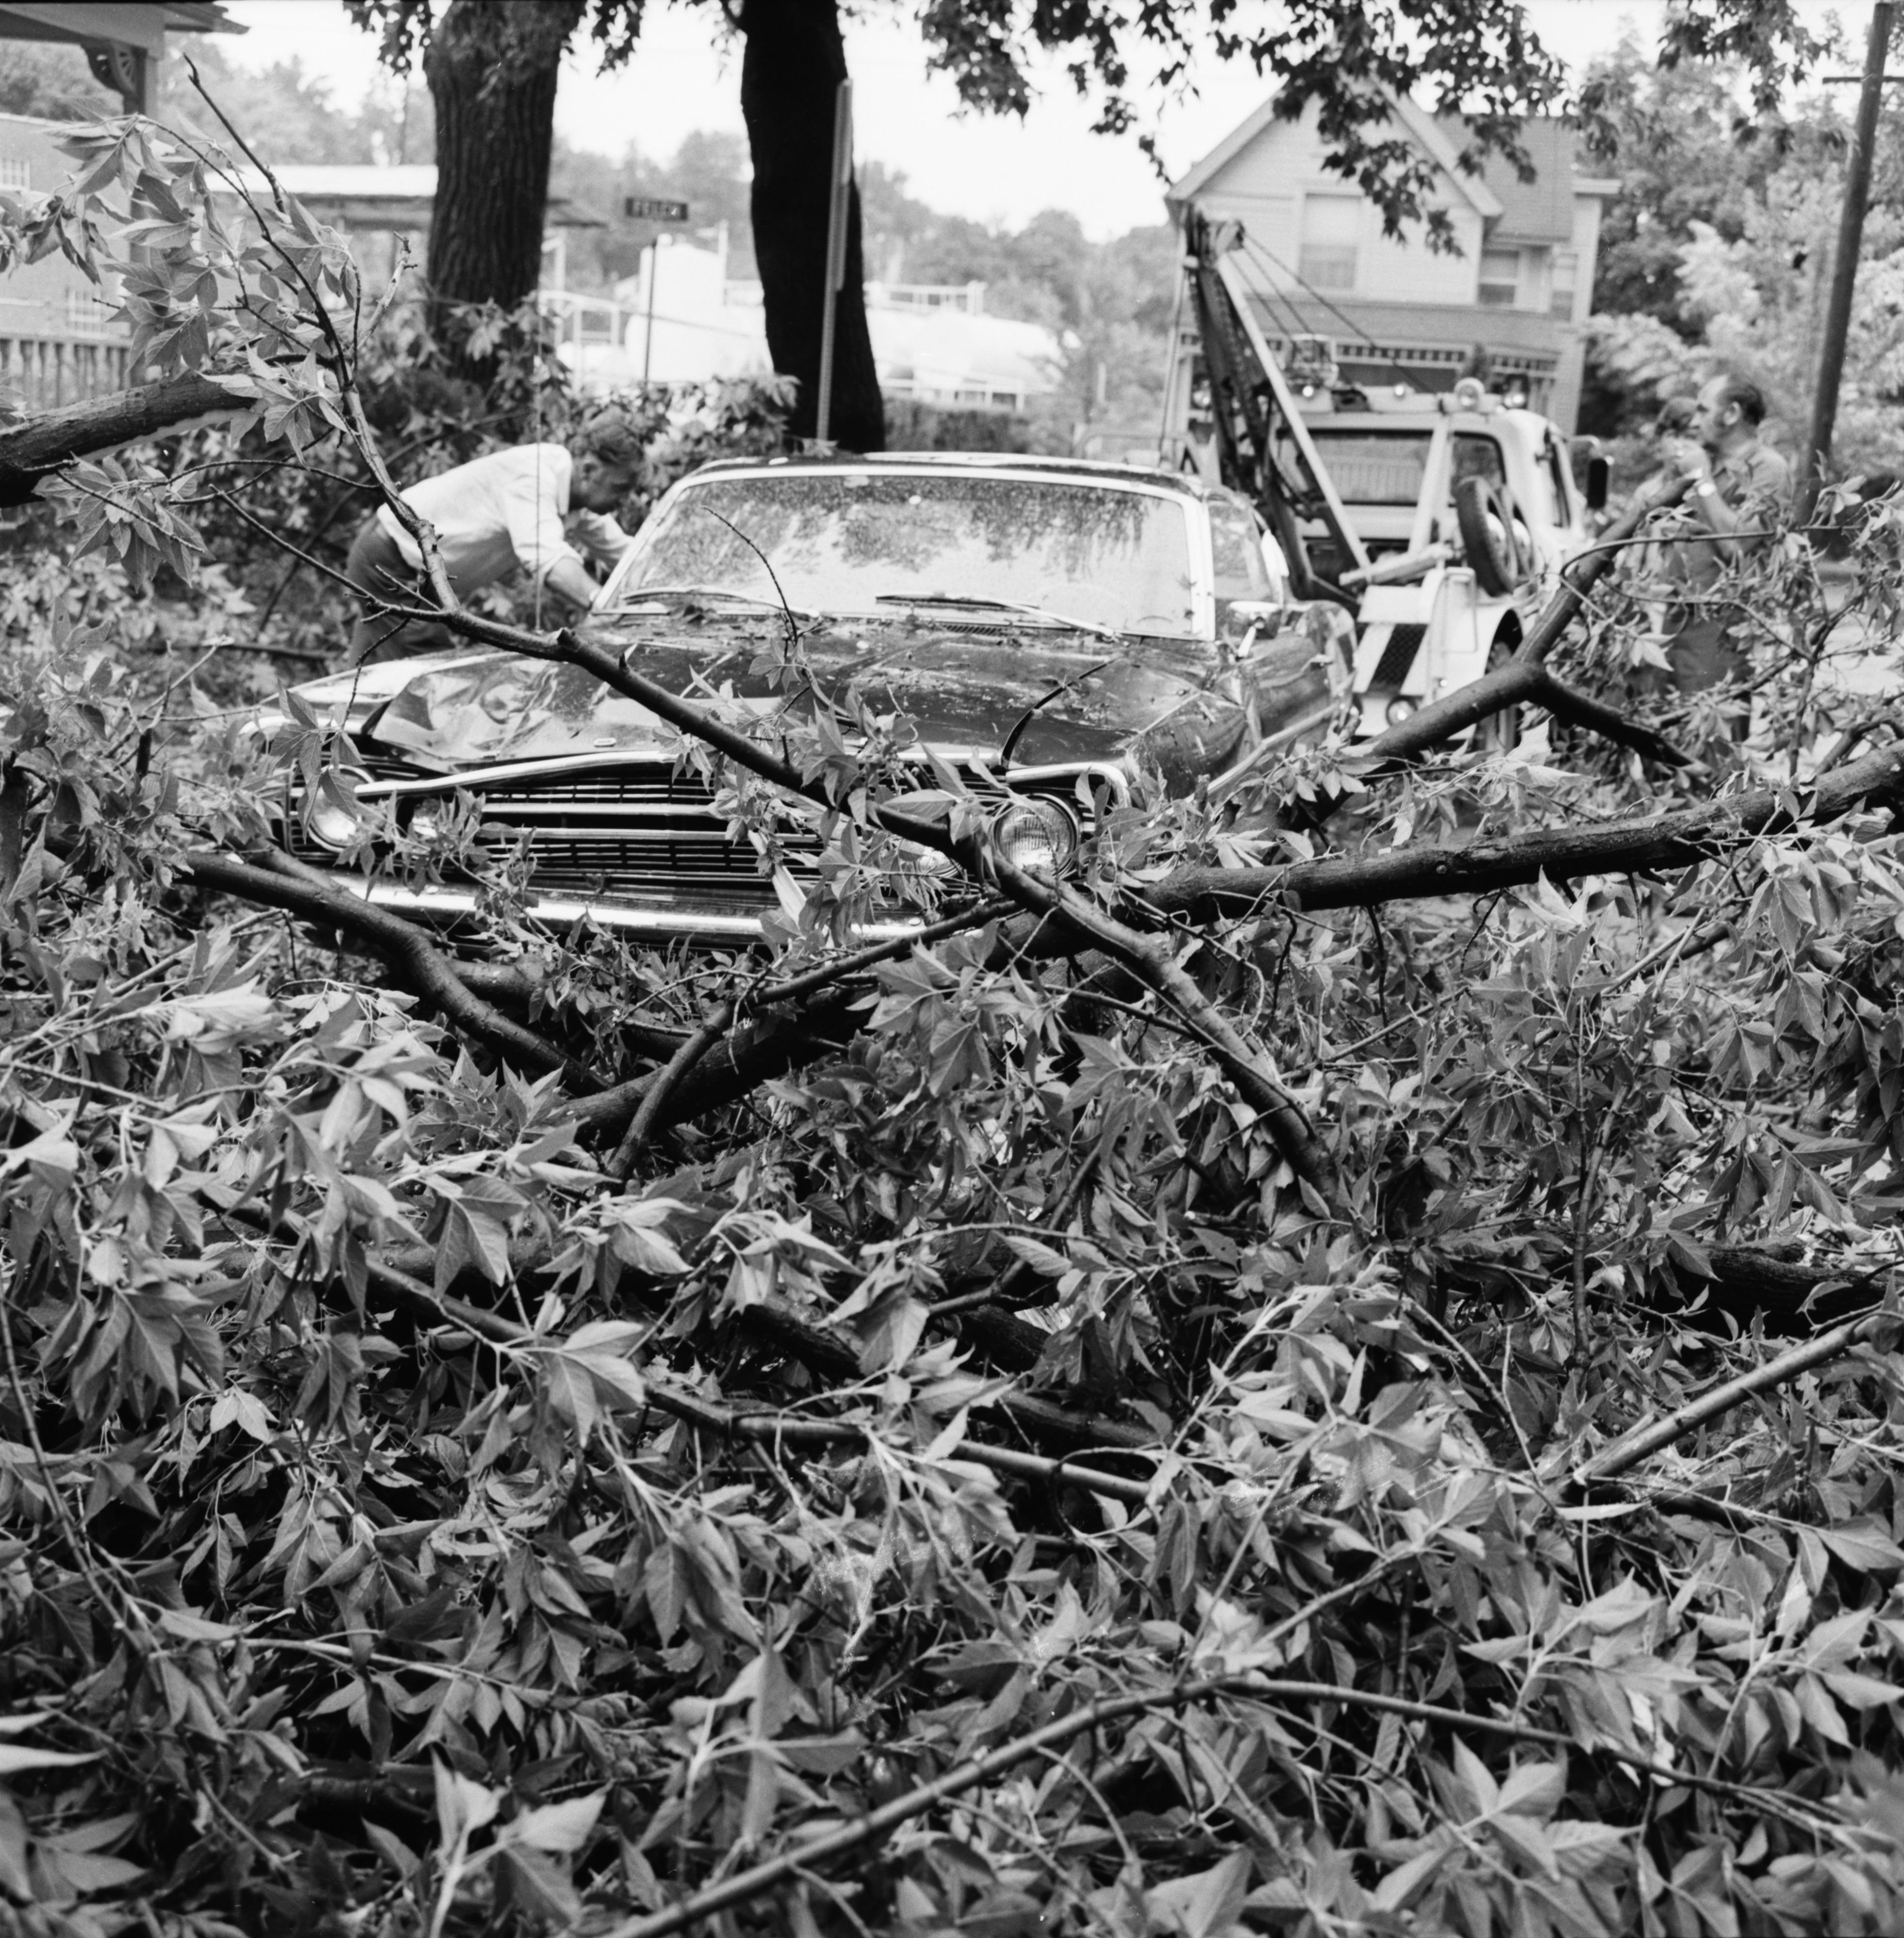 Wind blows tree over on car, July 1972 image